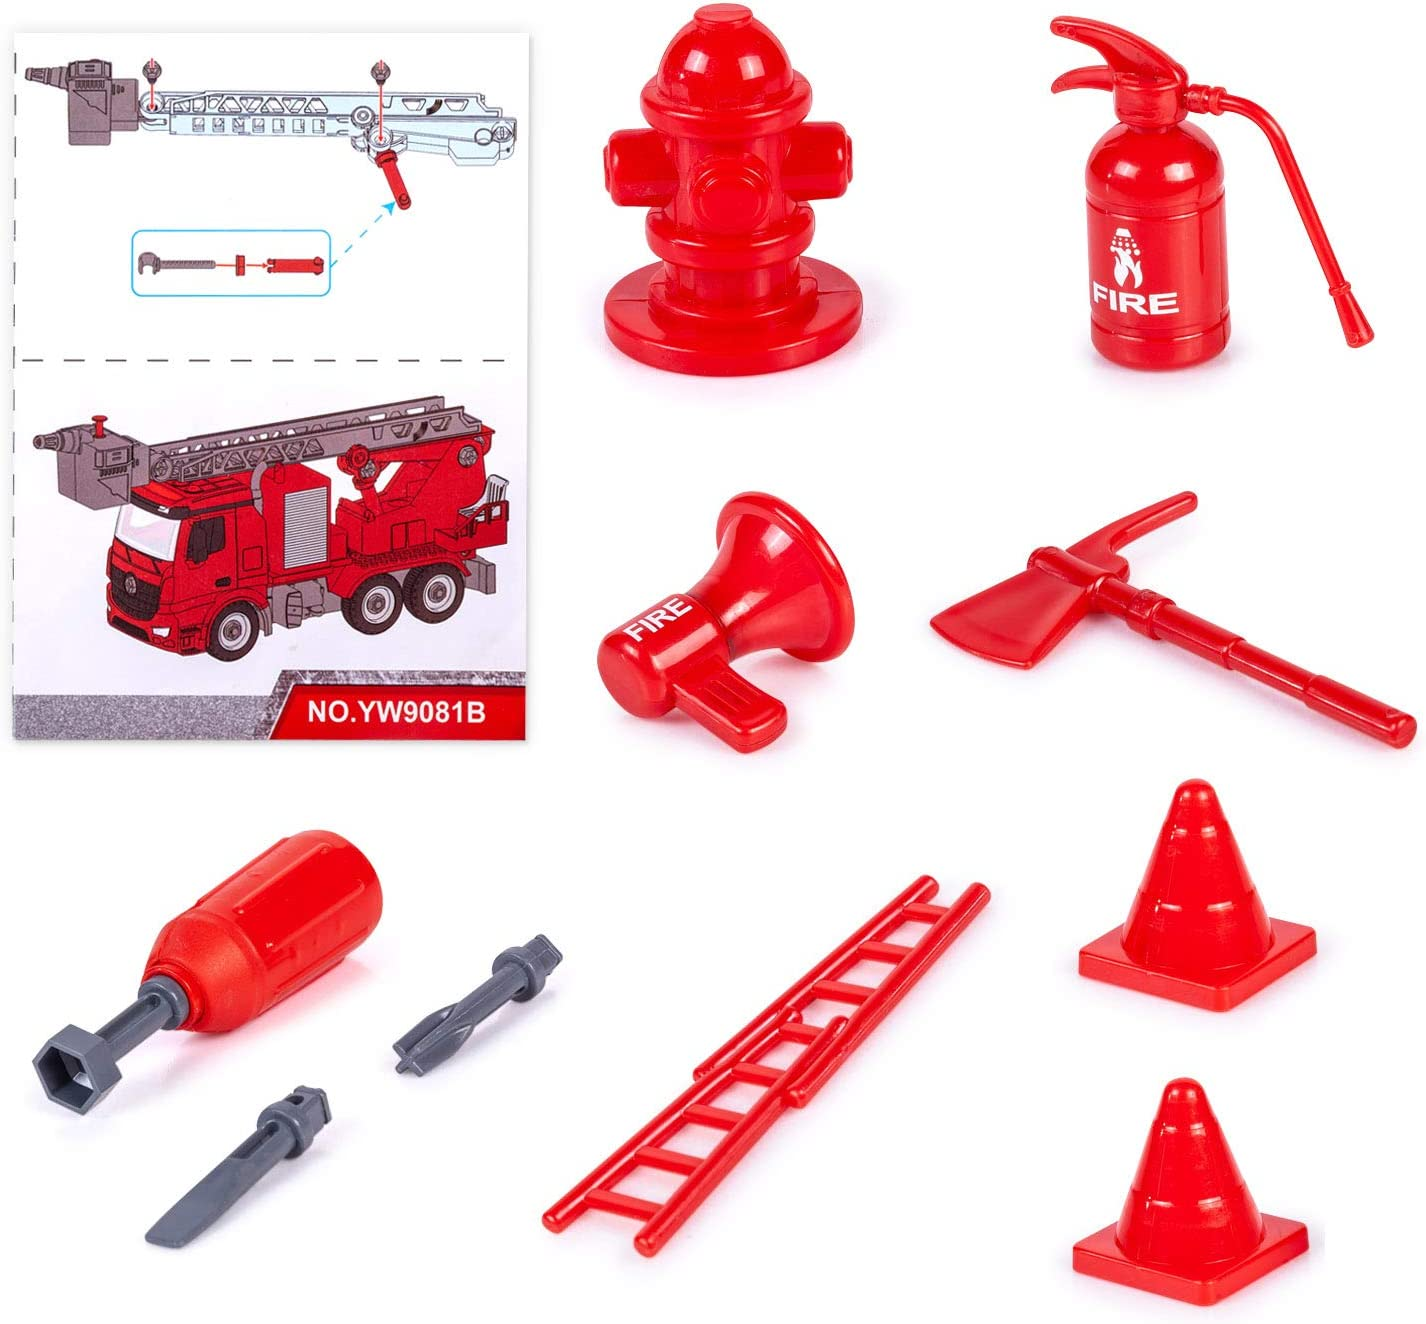 Years Old Boy and Girl iLifeTech Fire Truck with Lights and Sound 3 in 1 Take Apart Car Toys for 3 Fire Truck